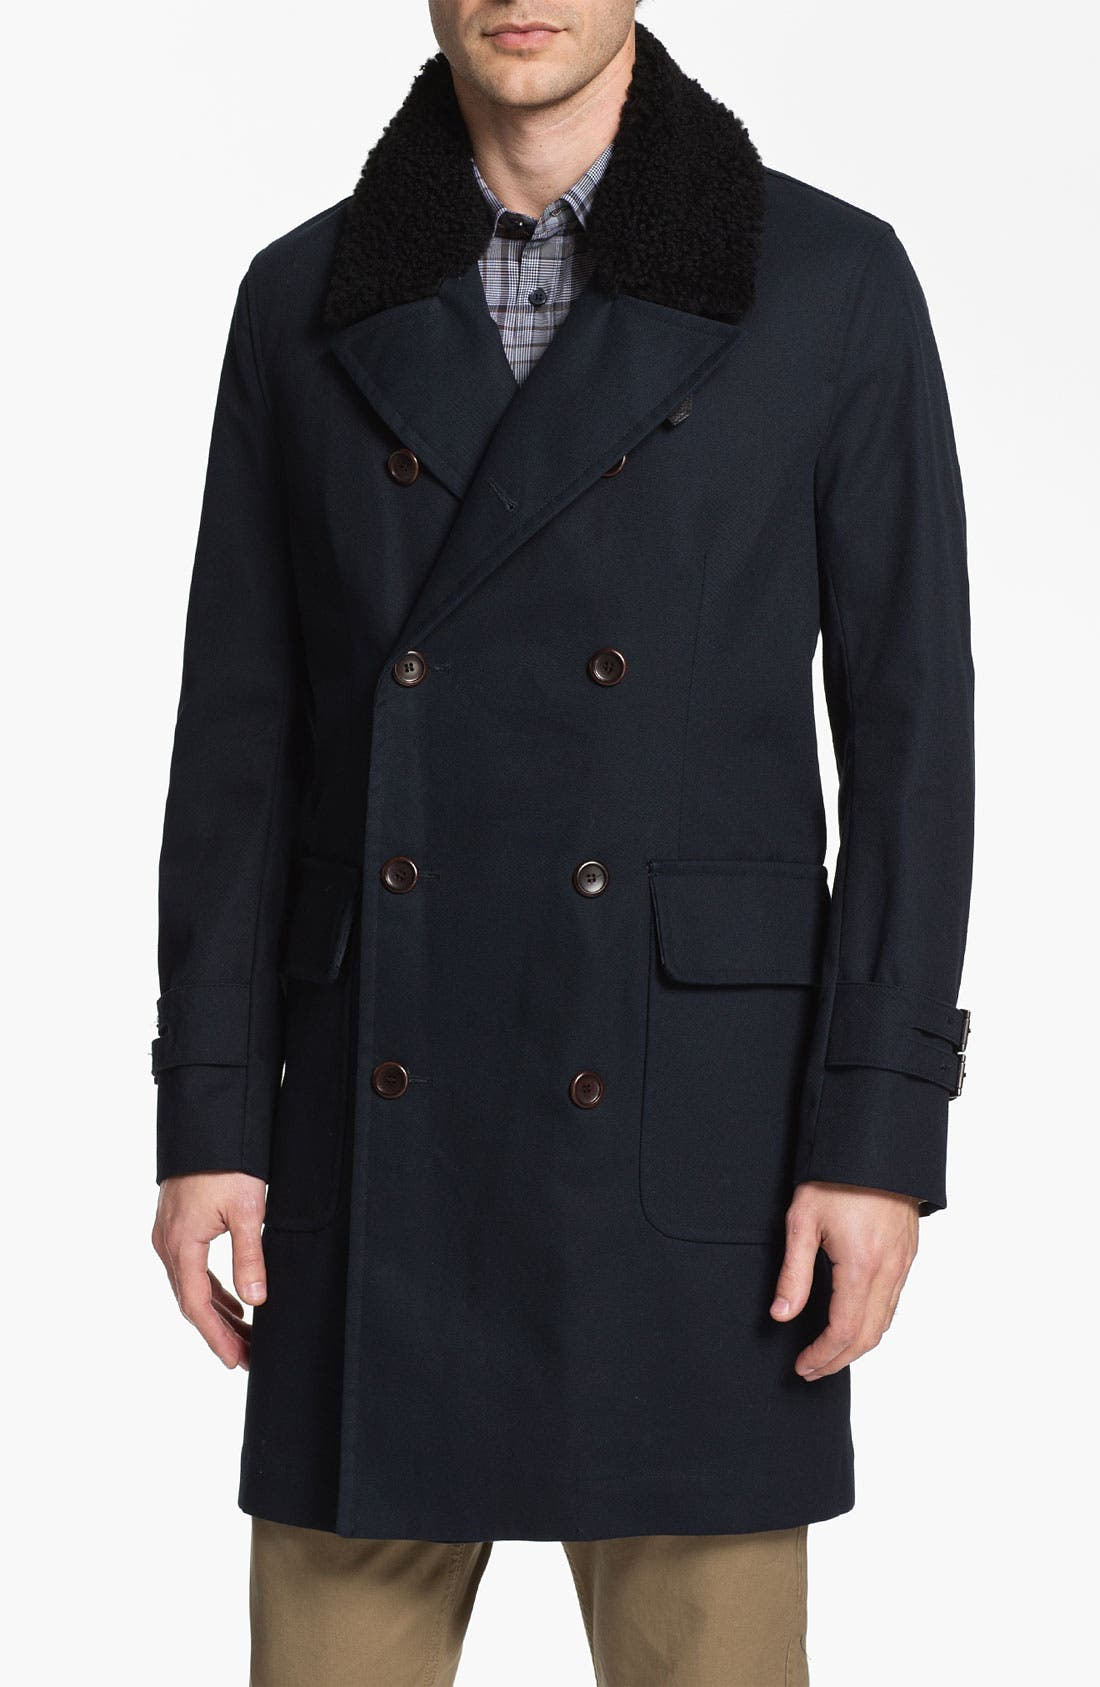 Alternate Image 1 Selected - PLECTRUM by Ben Sherman Double Breasted Overcoat